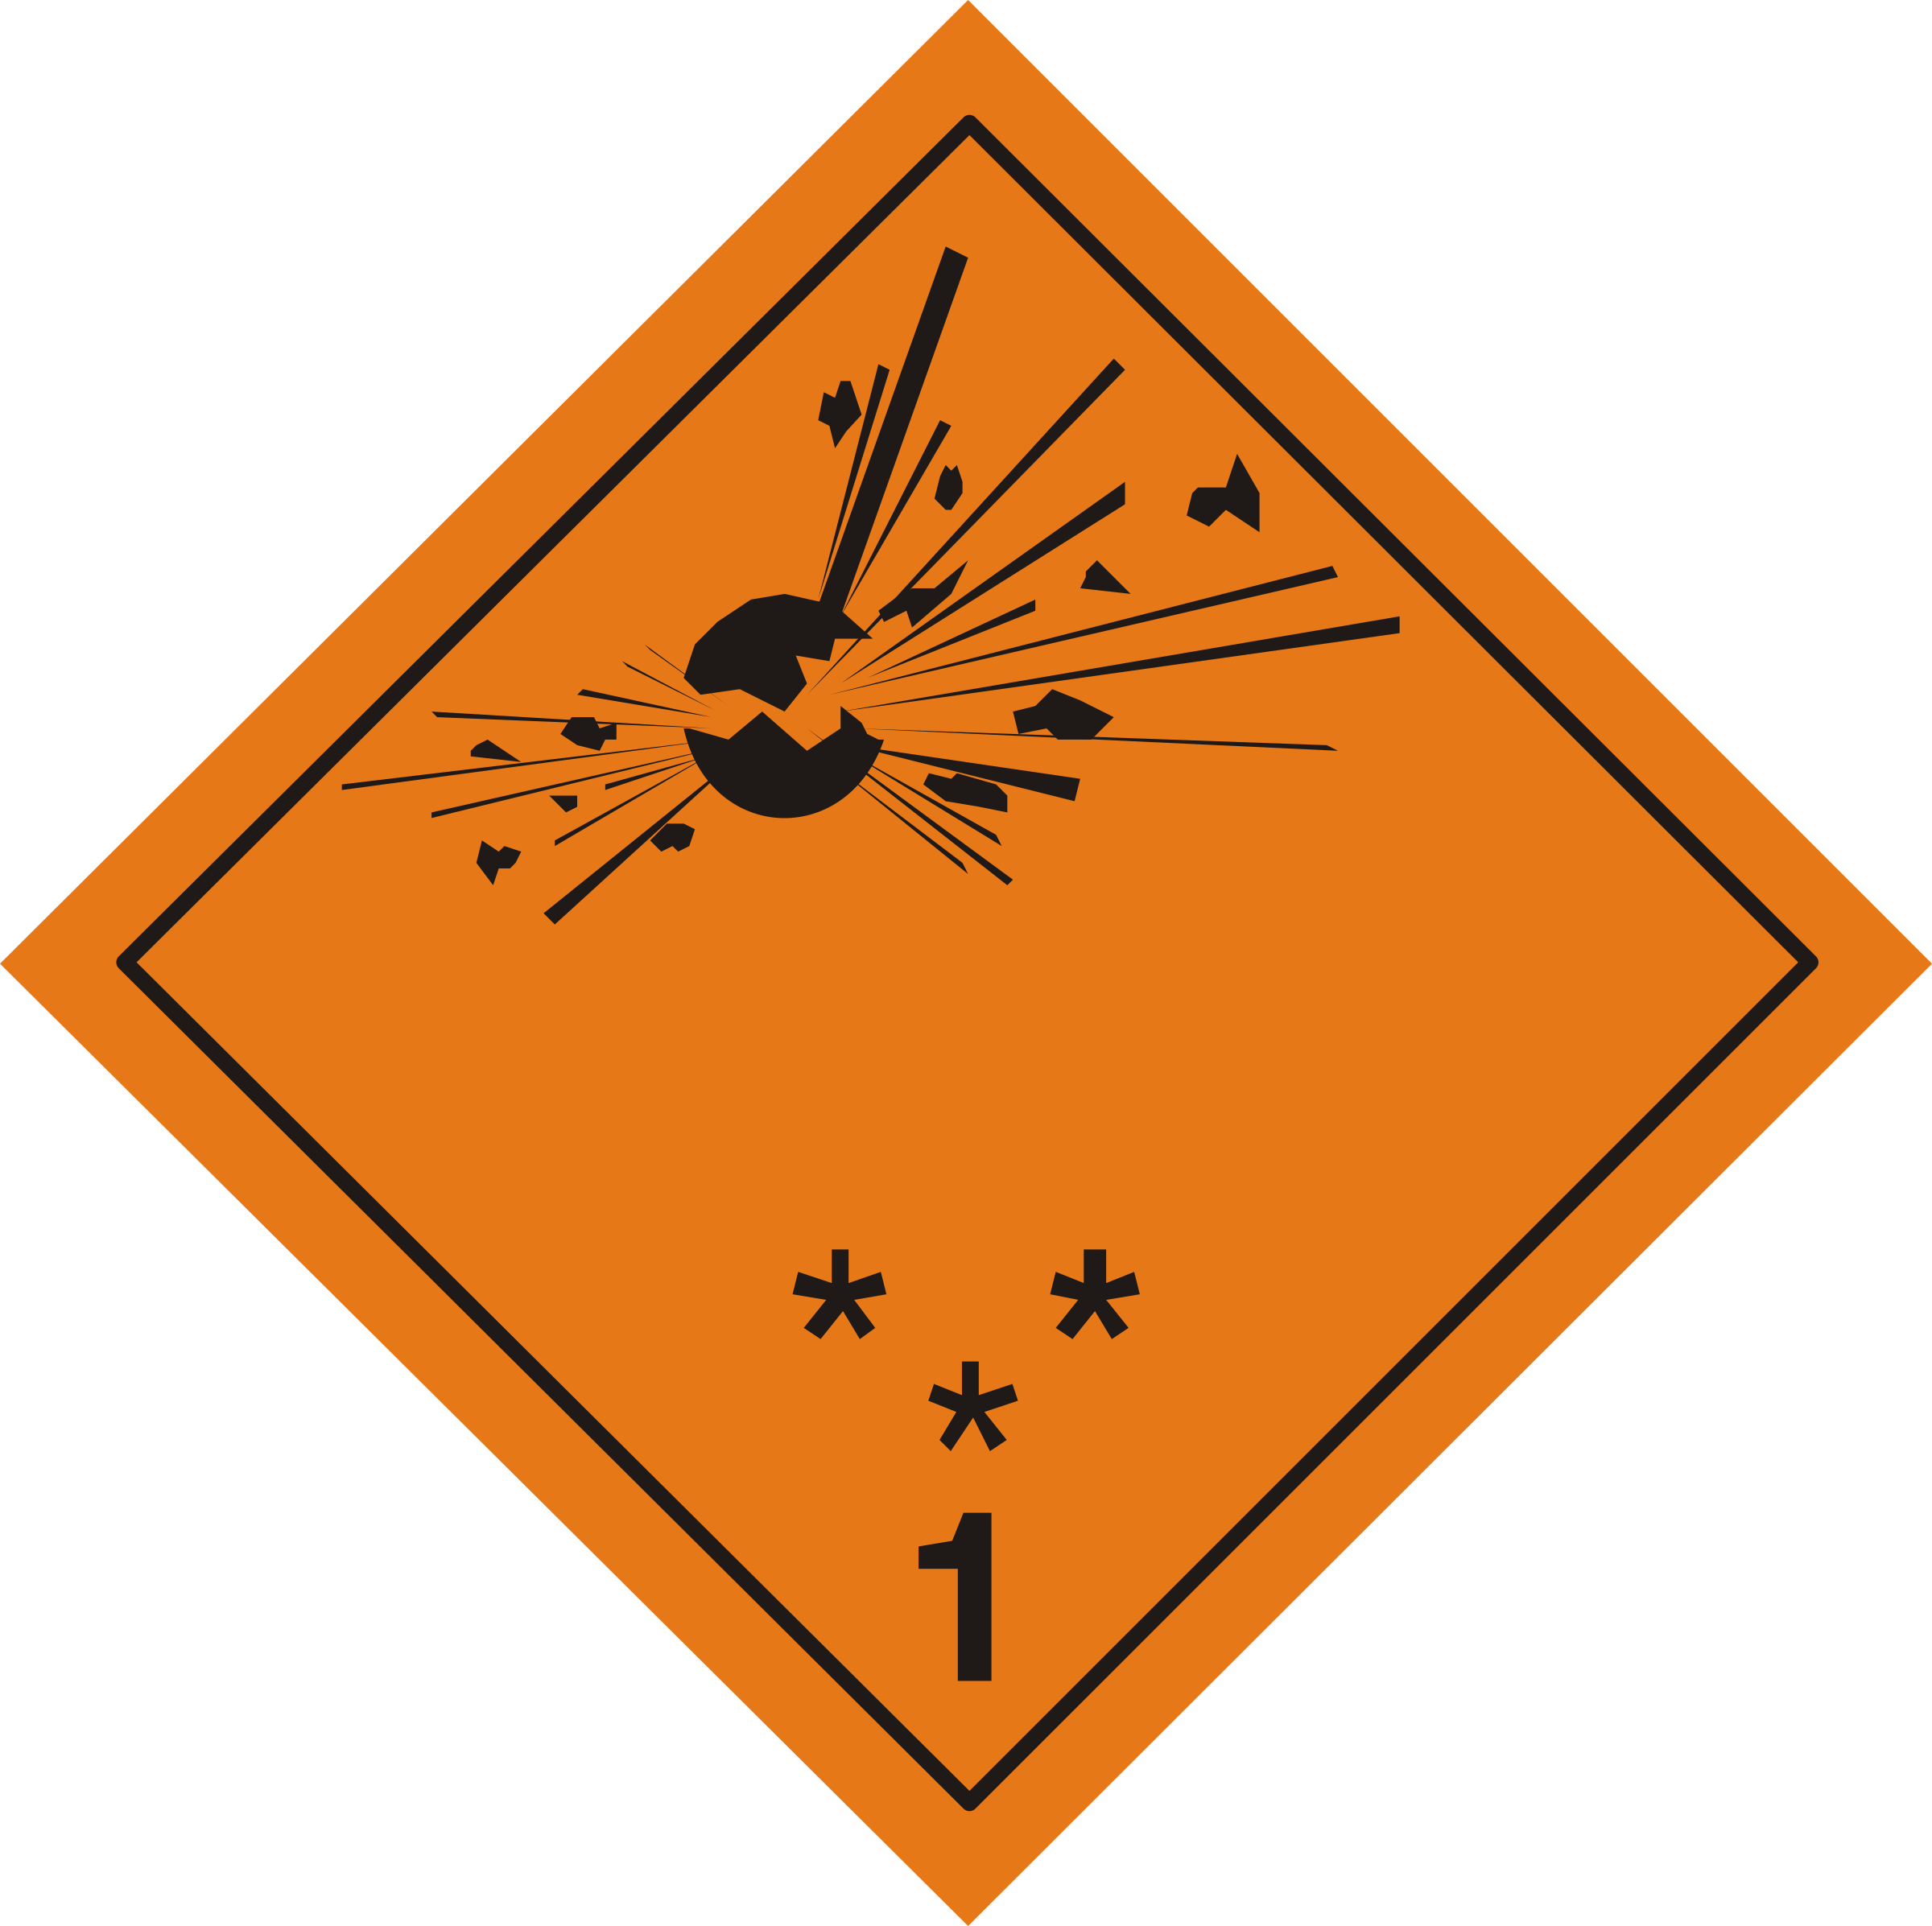 ADR pictogram 1 - Explosives by Juhele